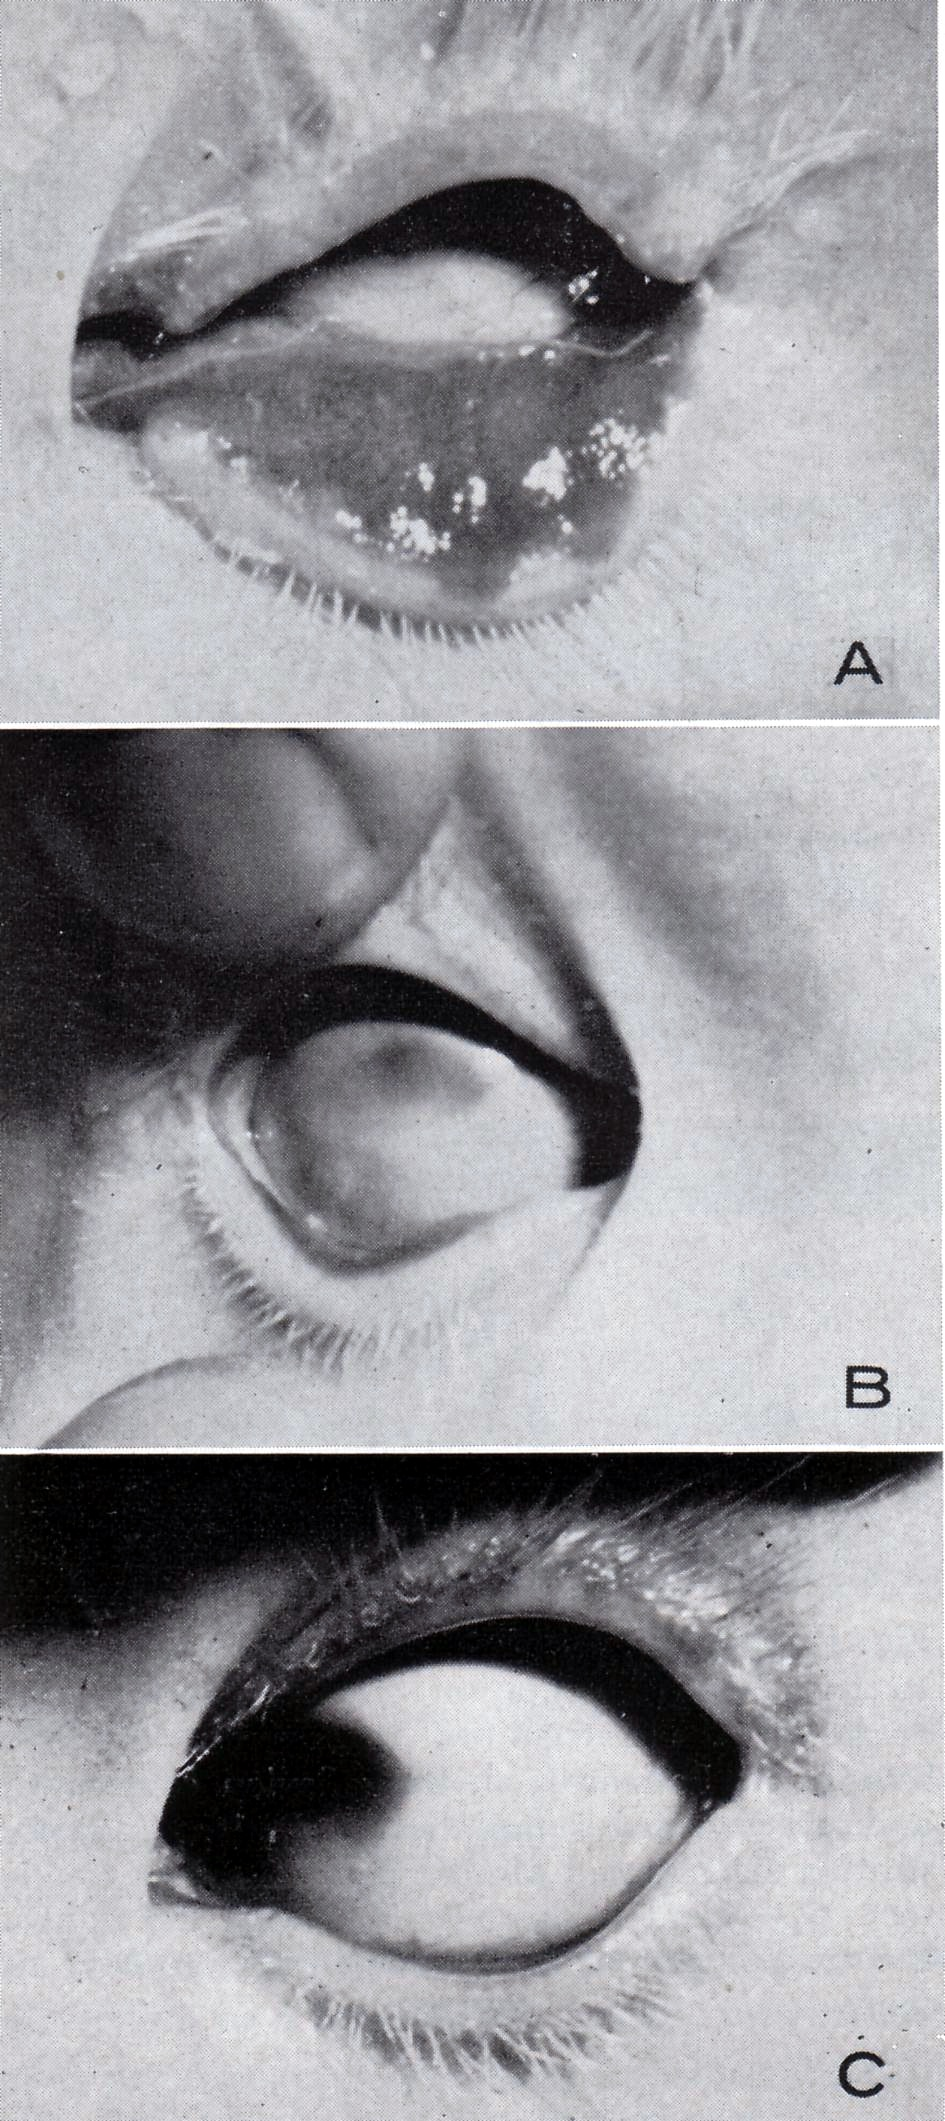 Oculocerebral syndrome with hypopigmentation in 3 individuals